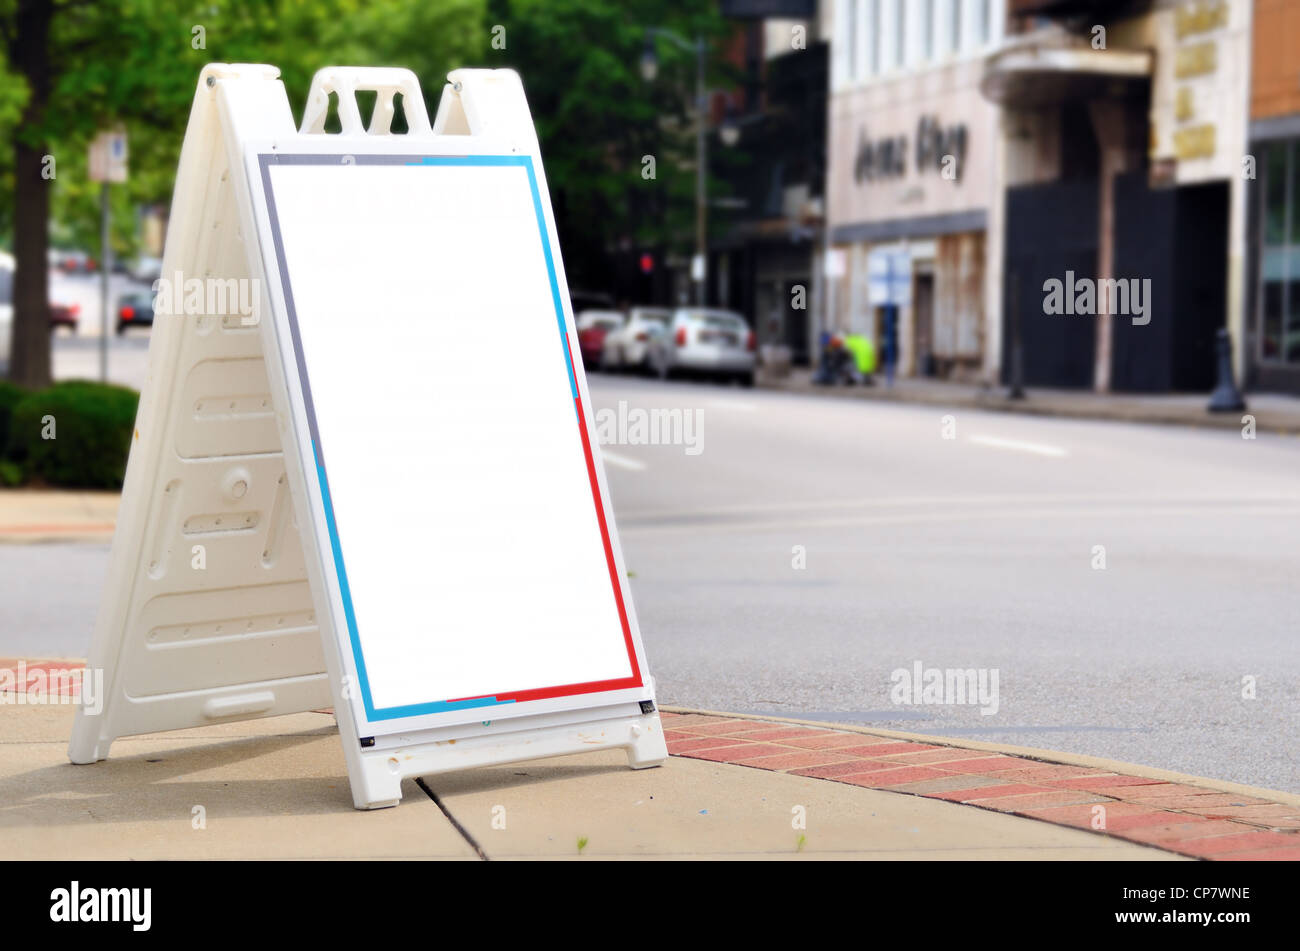 Blank billboard on a street corner for advertising - Stock Image